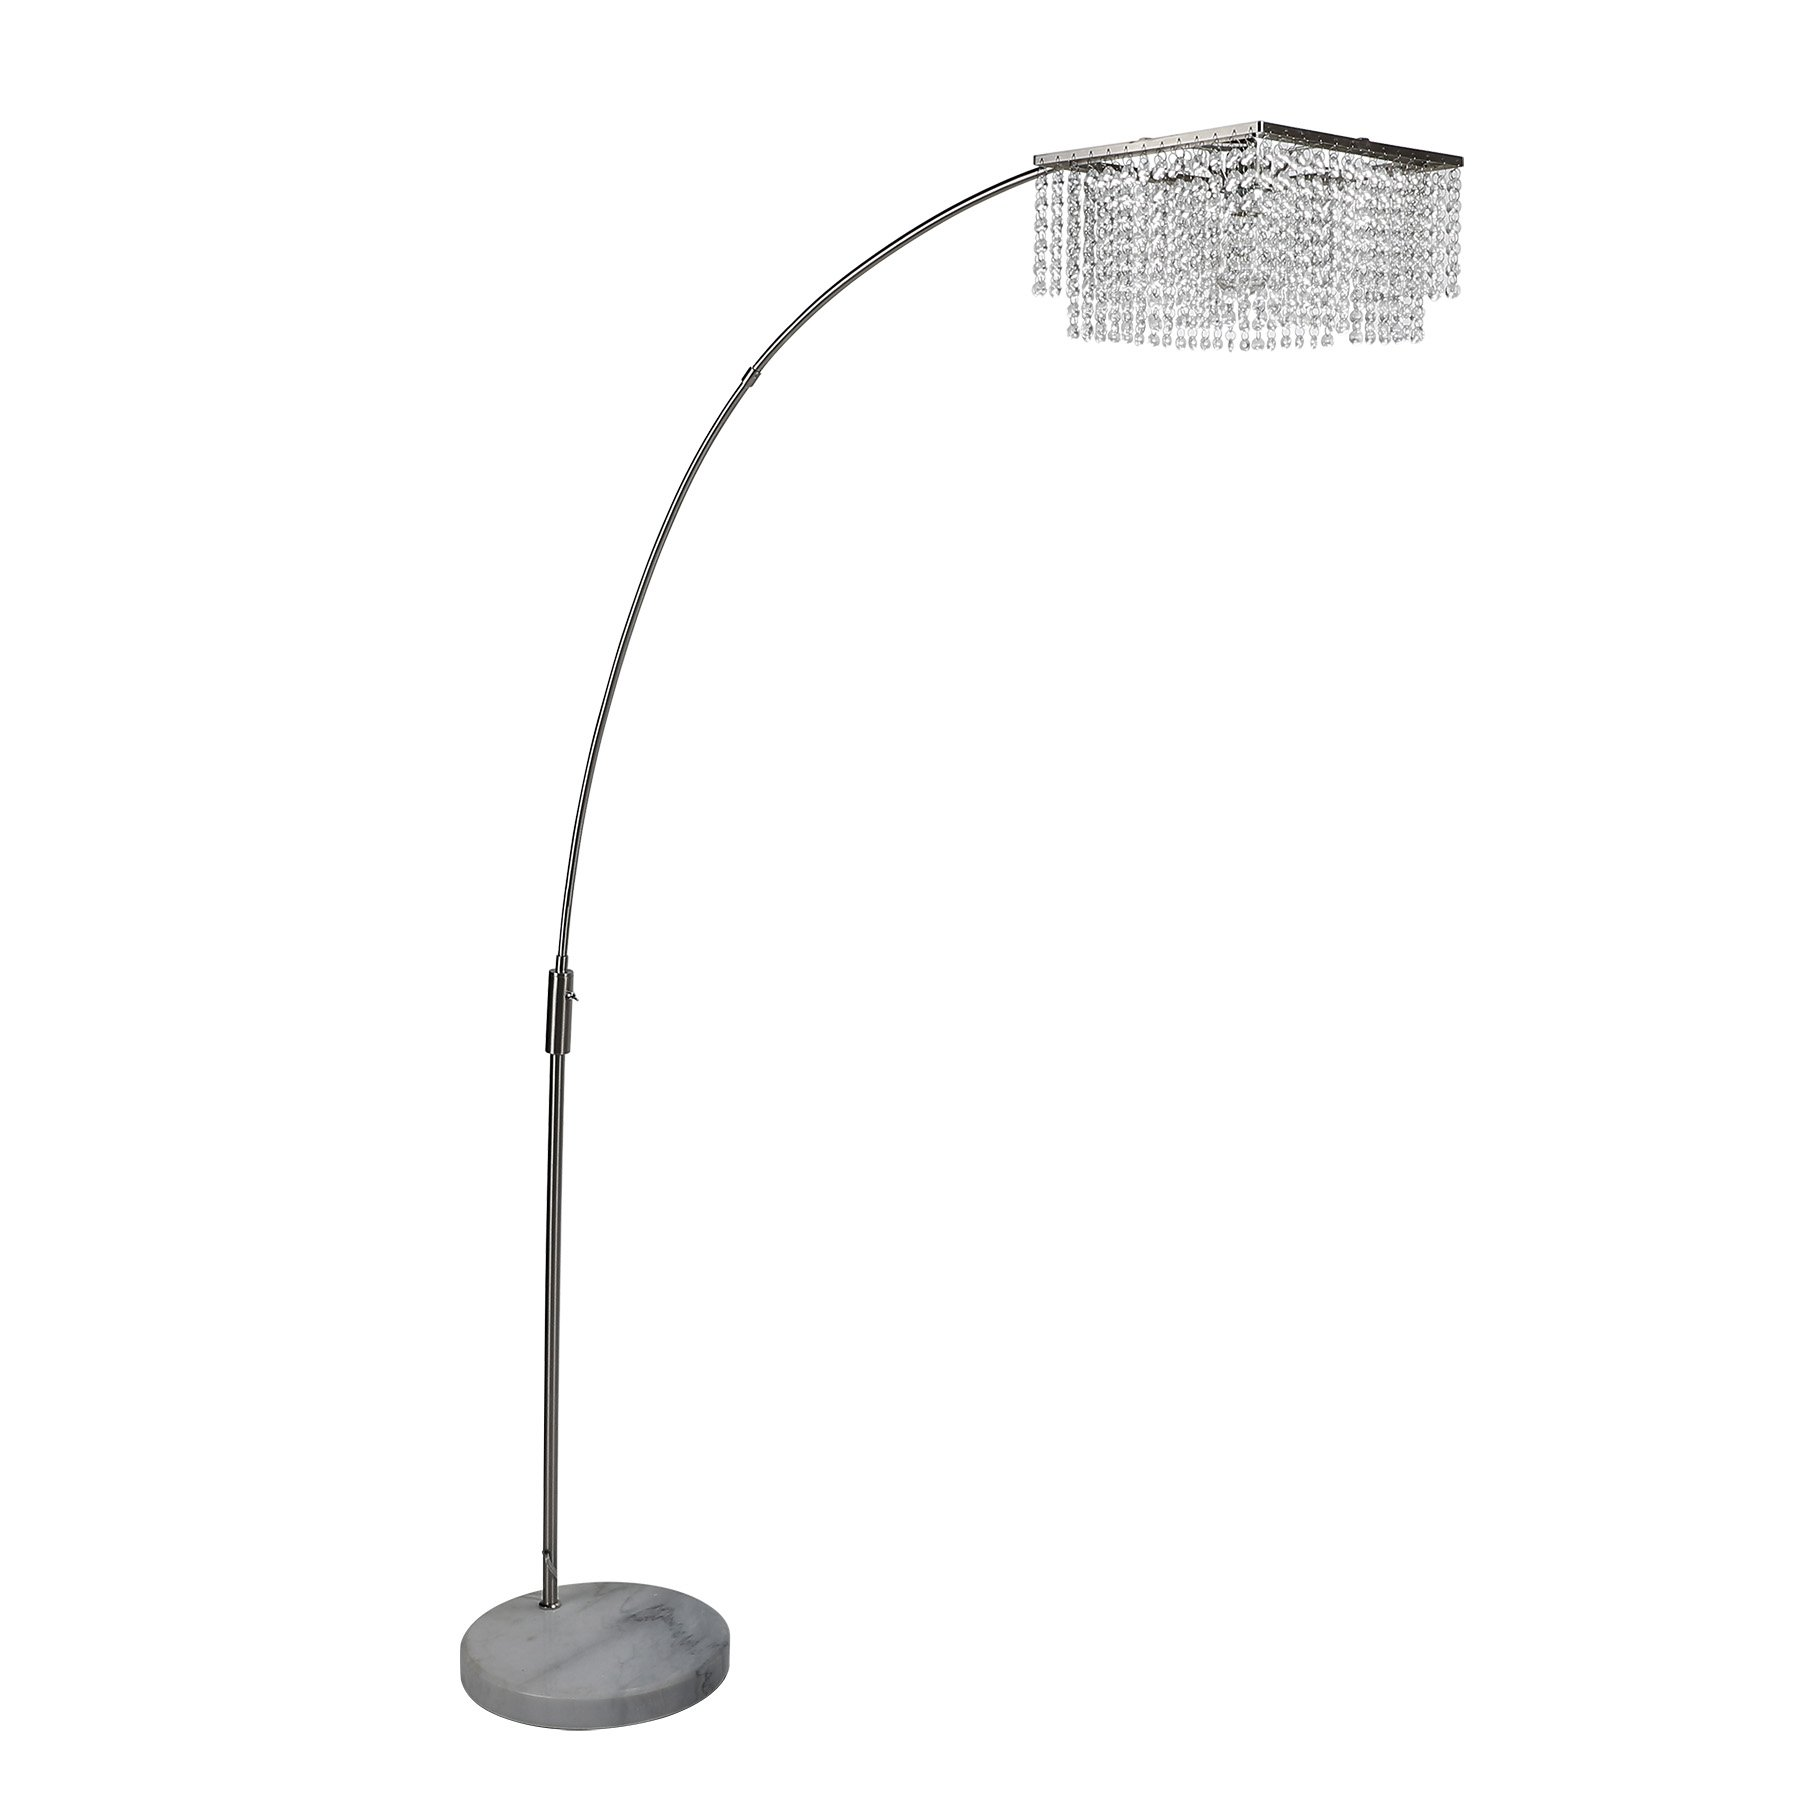 CO-Z Crystal Shade Modern Arch Floor Lamp, Adjustable Contemporary Floor Lamp with Natural Marble Base, Satin Nickle Arched Lighting Fixture for Living Room Bedroom